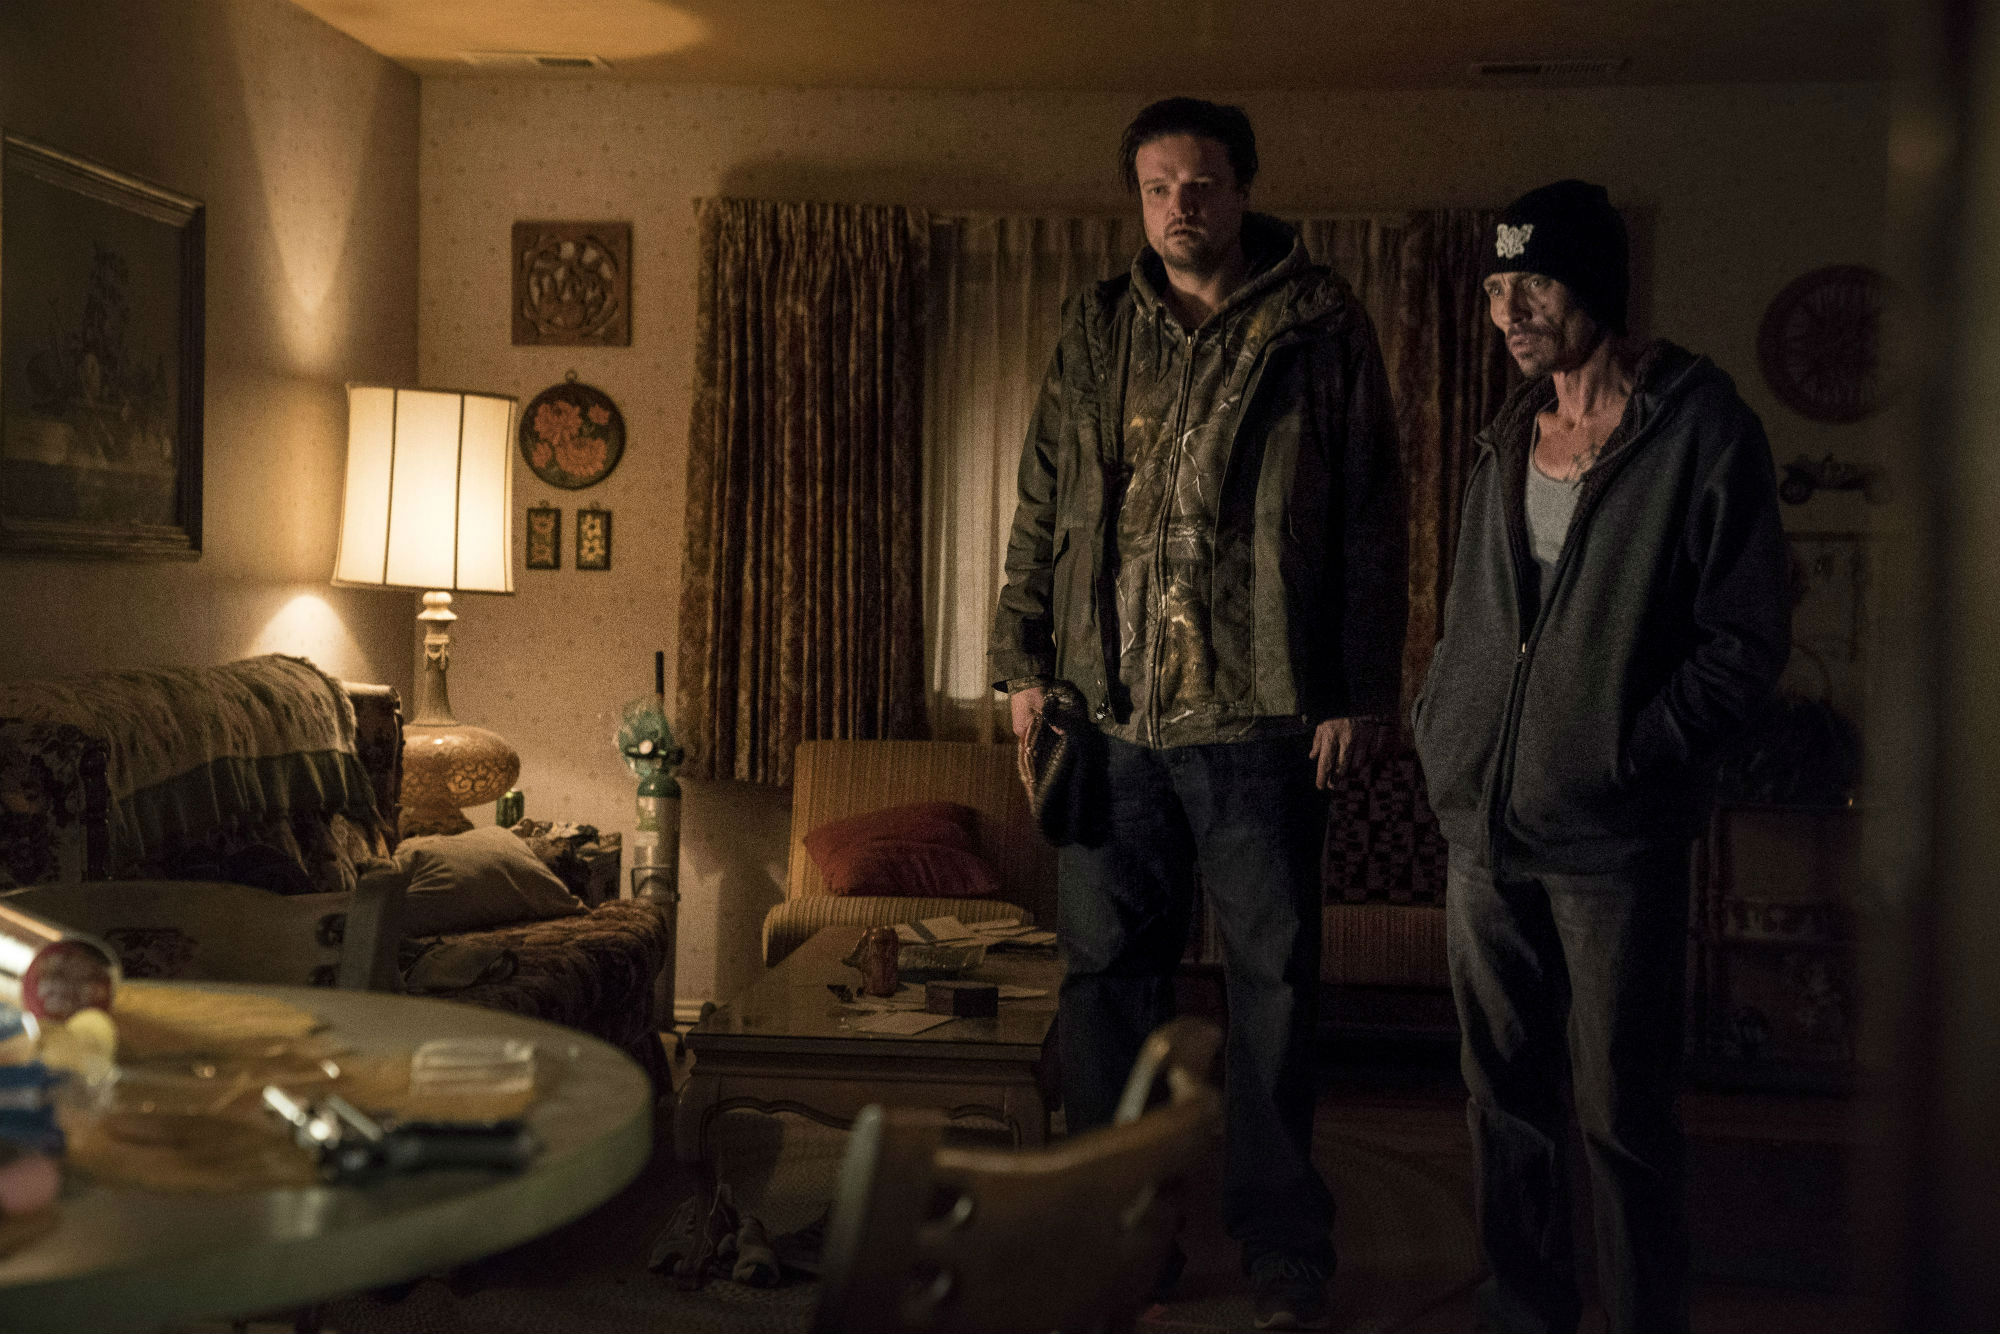 Another Take: 'El Camino: A Breaking Bad Movie' gives the audience closure